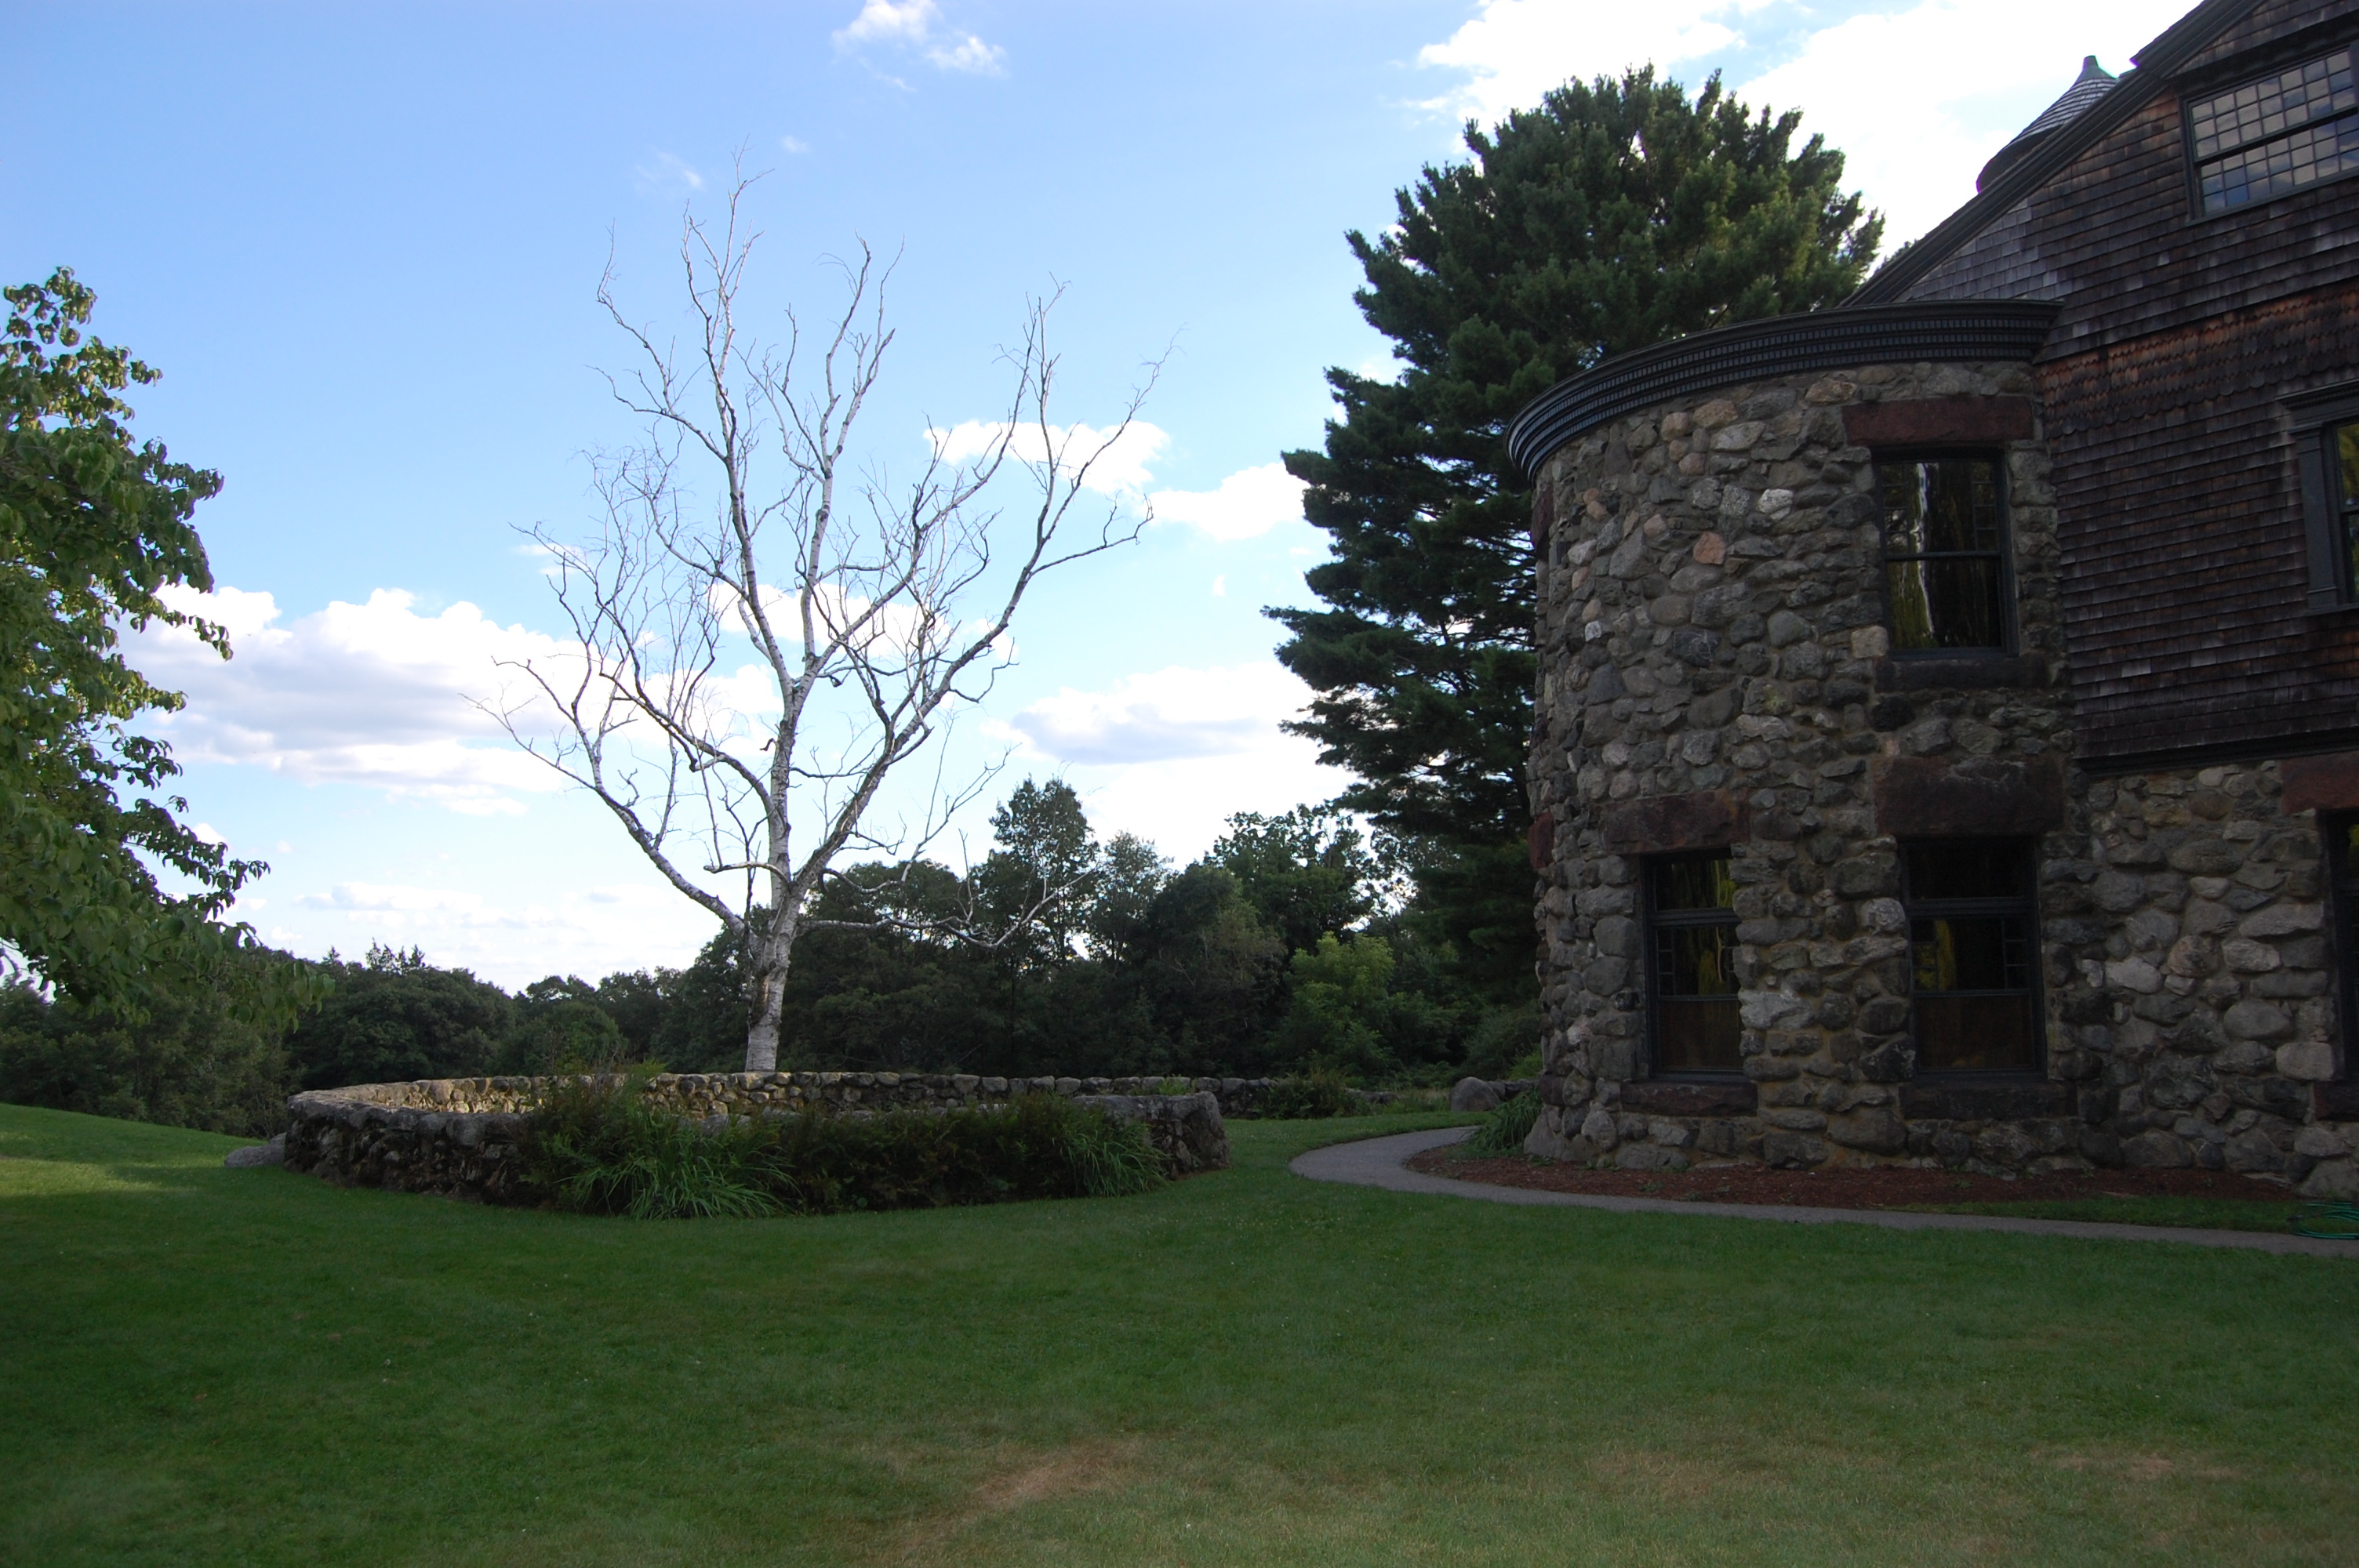 Stonehurst and Paine Estate Grounds in Waltham